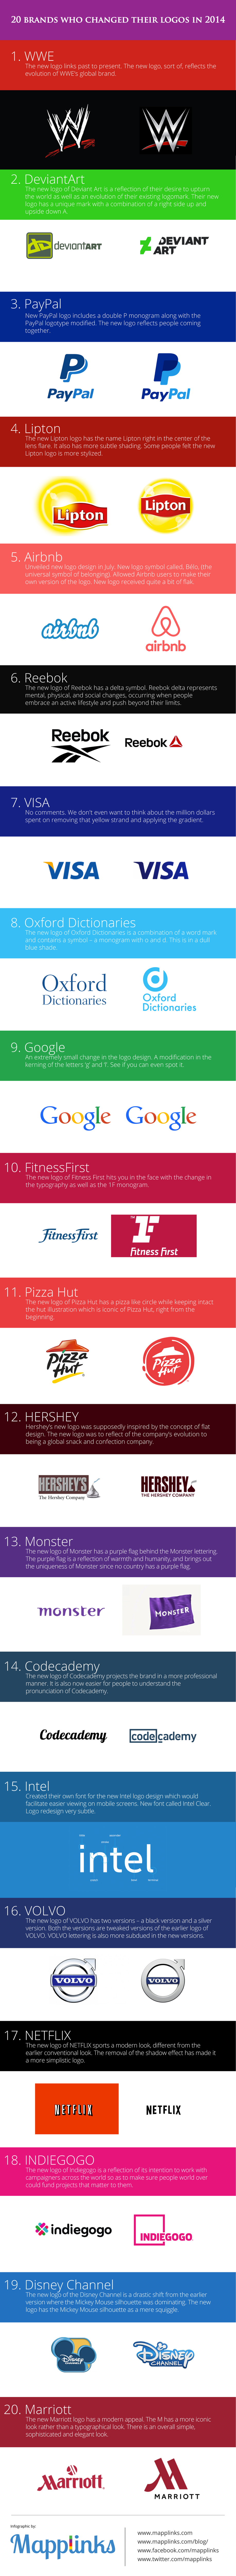 20-brands-who-changed-their-logos-in-2014